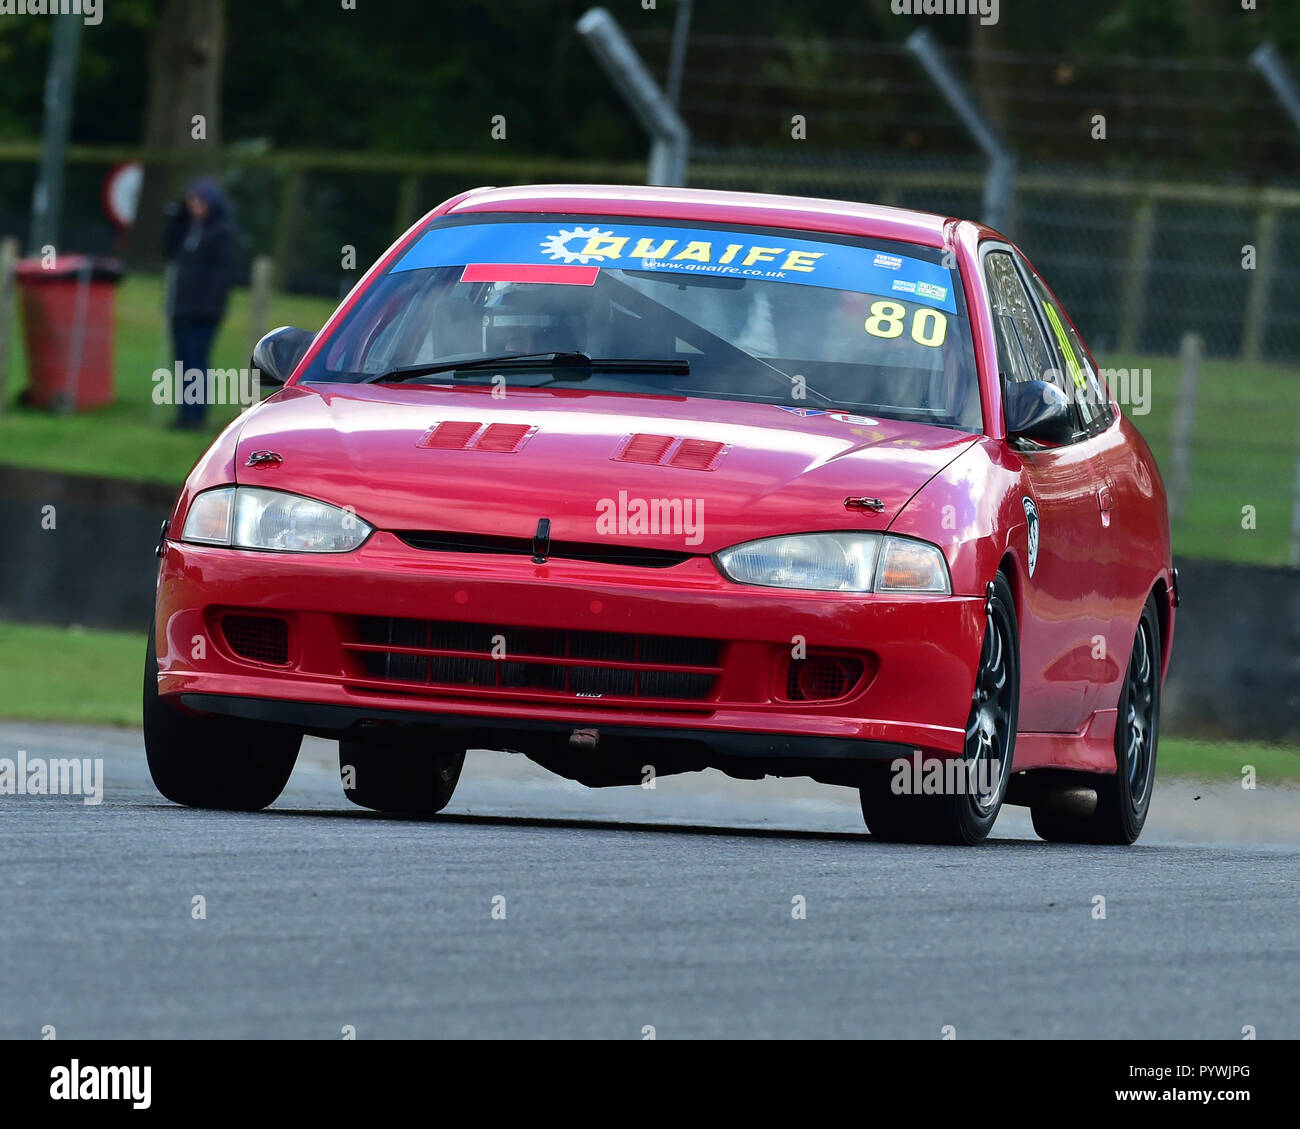 Gideon September, Mitsubishi Mirage, SE Tin Tops Championship, BARC, British Automobile Racing Club, National Championship, Brands Hatch, October 2018 - Stock Image